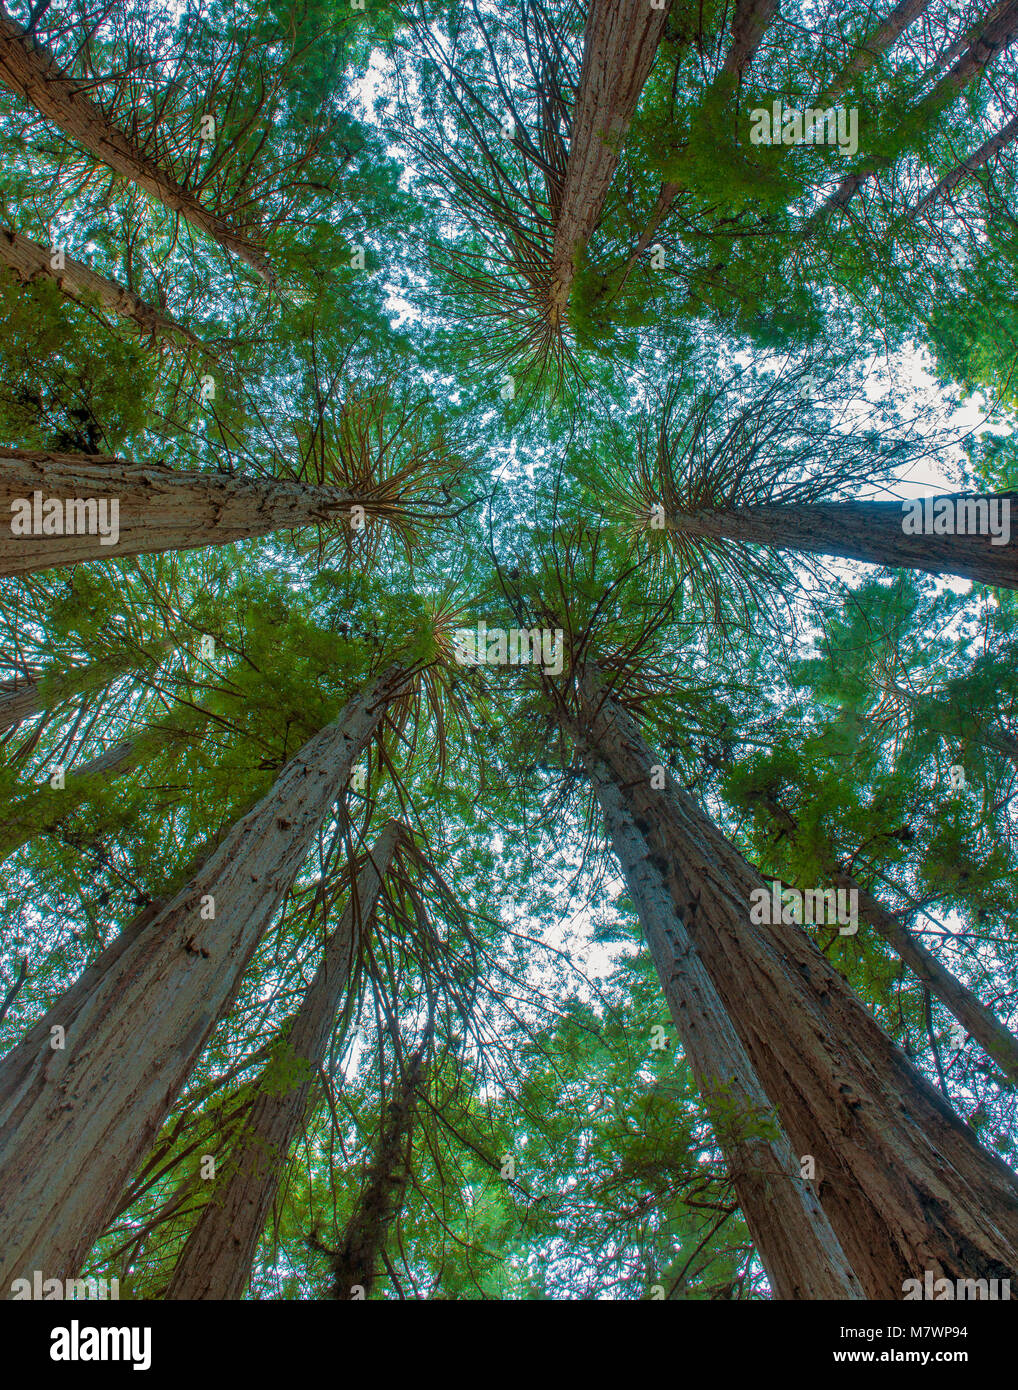 Cathedral Ring, Redwoods, Sequoia Sempervirens, Muir Woods National Monument, Marin County, California - Stock Image